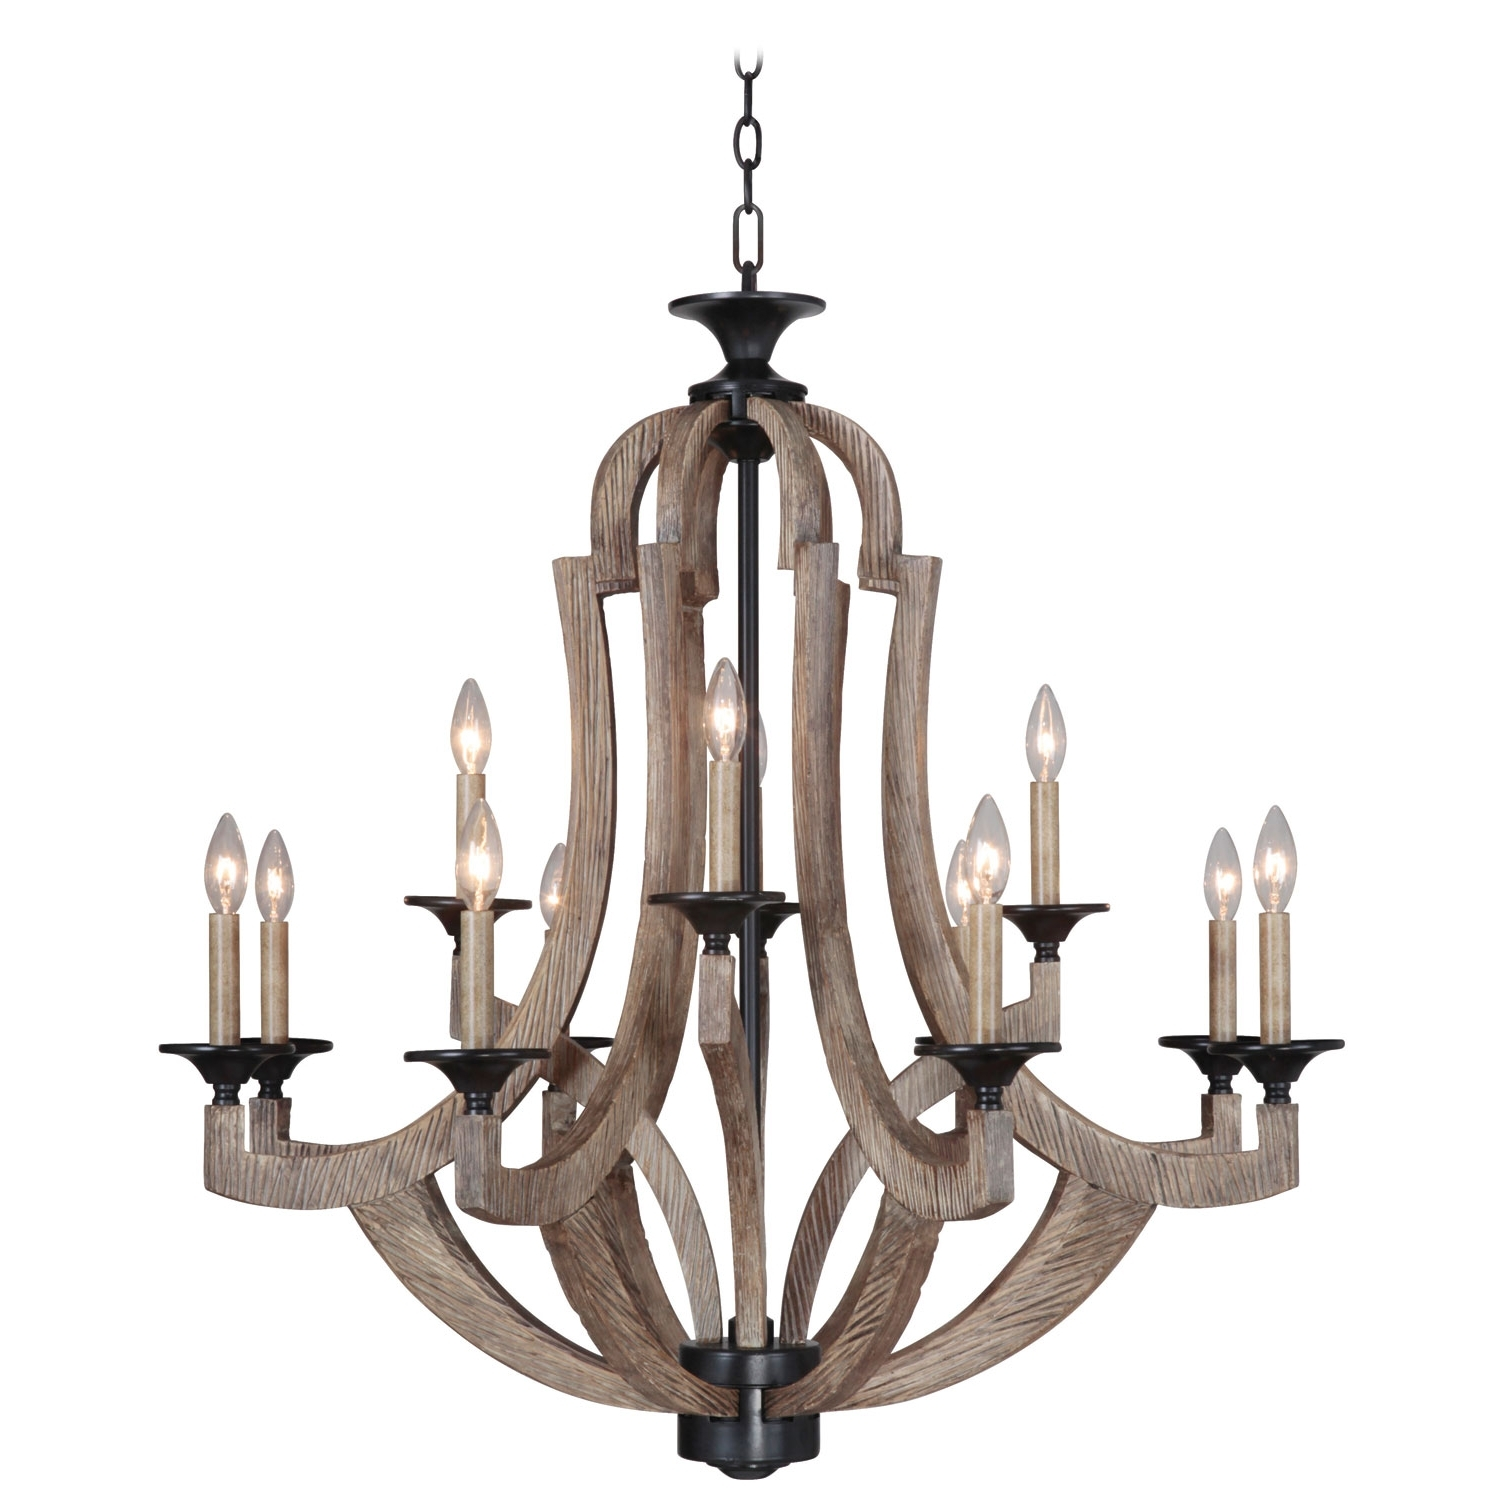 Bellacor Pertaining To Small Shabby Chic Chandelier (View 19 of 20)